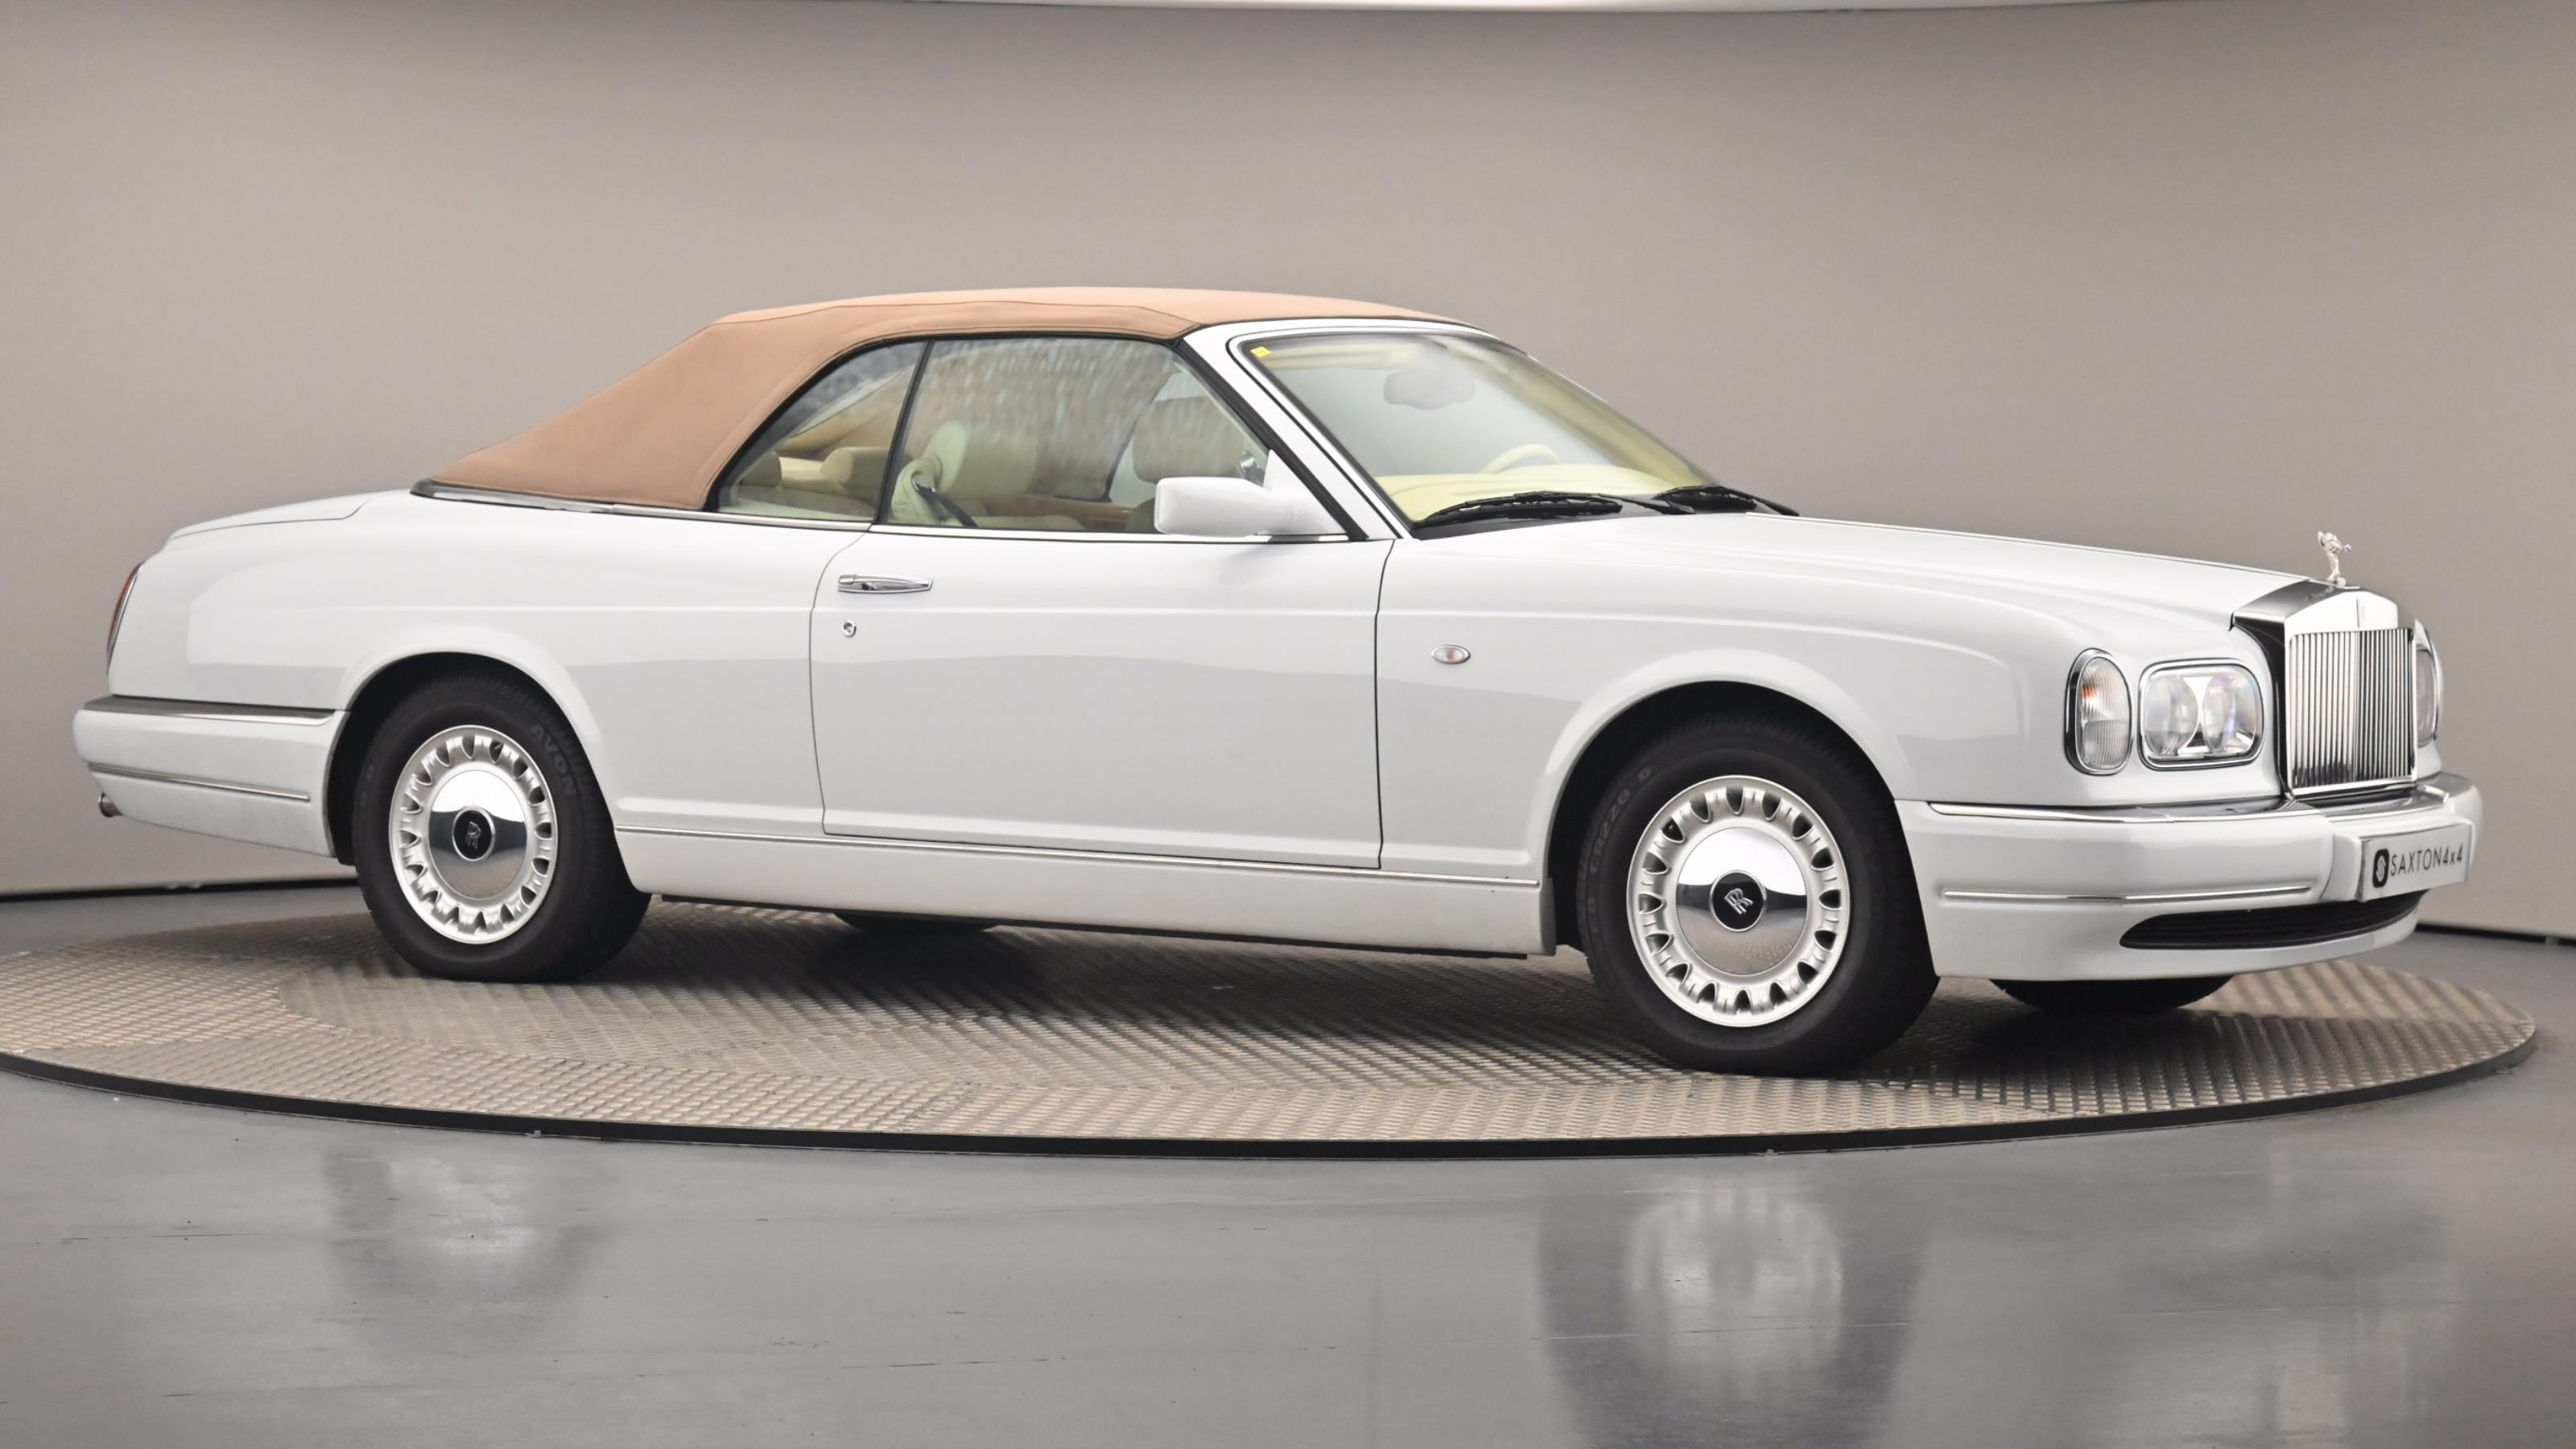 Used 2016 Rolls-Royce Corniche 6.8 CONVERTIBLE LEFT HAND DRIVE 2dr WHITE at Saxton4x4